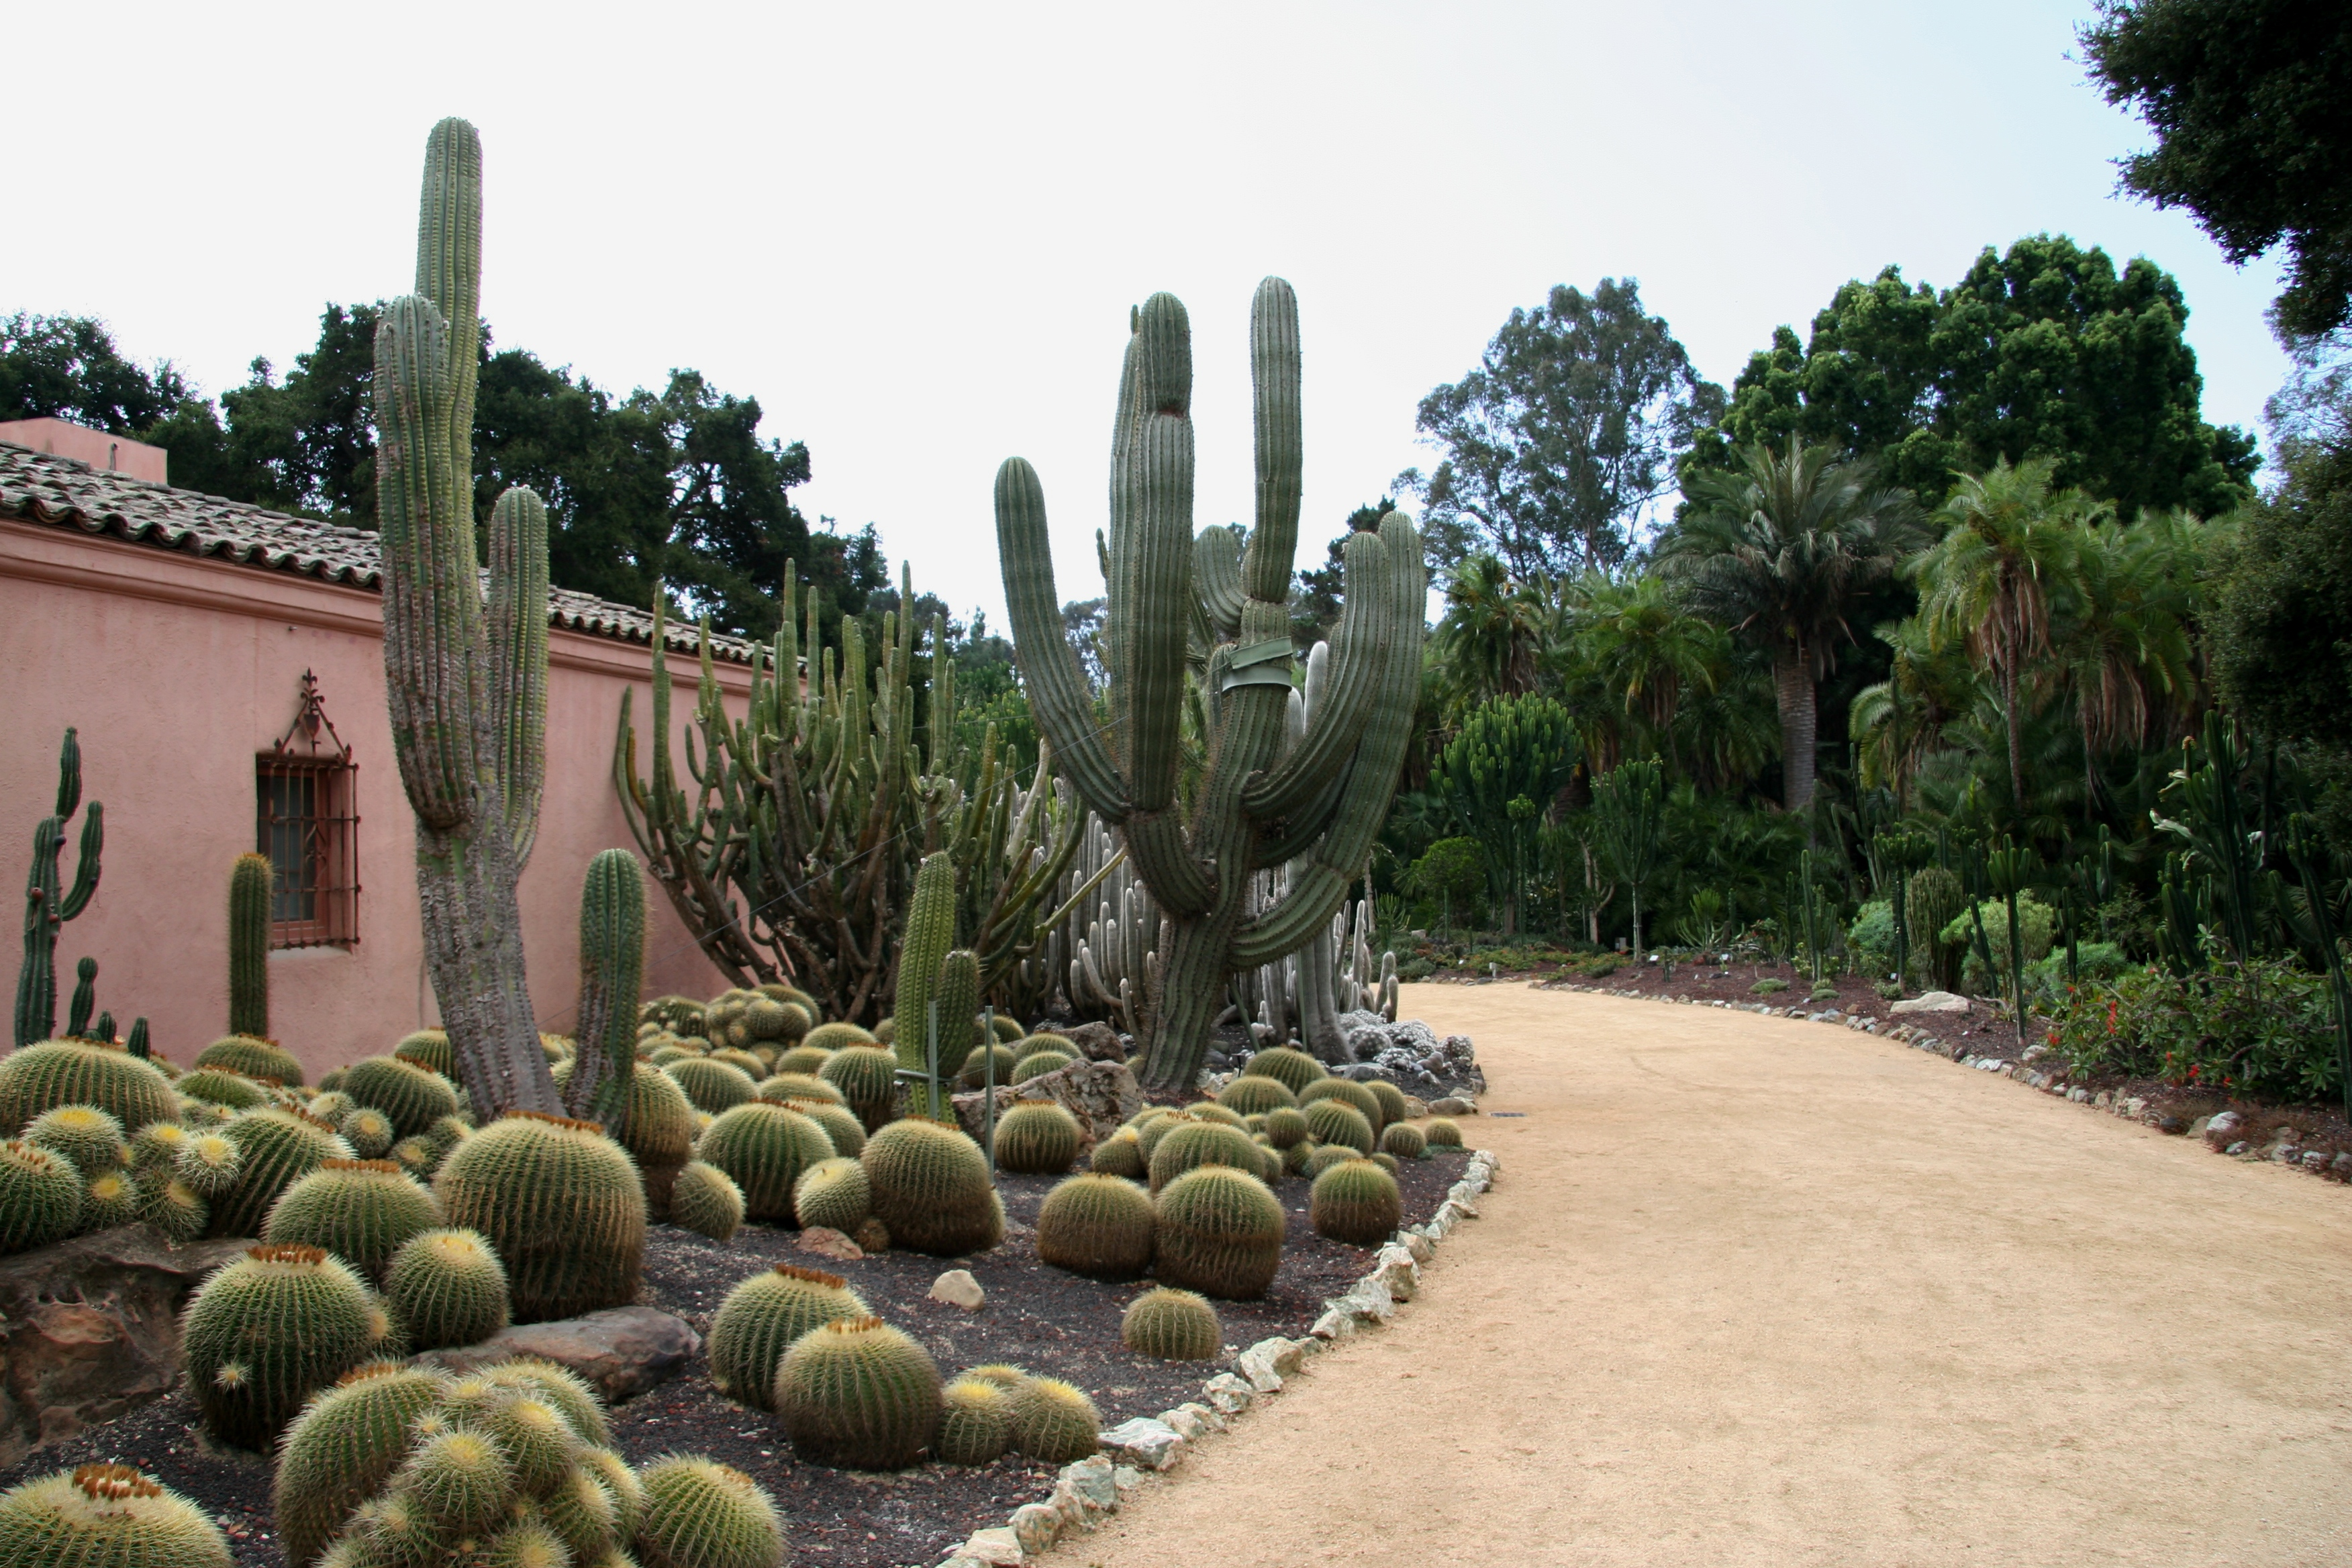 Flickr_-_brewbooks_-_Cacti_and_euphorbia_garden,_Lotusland_(6)